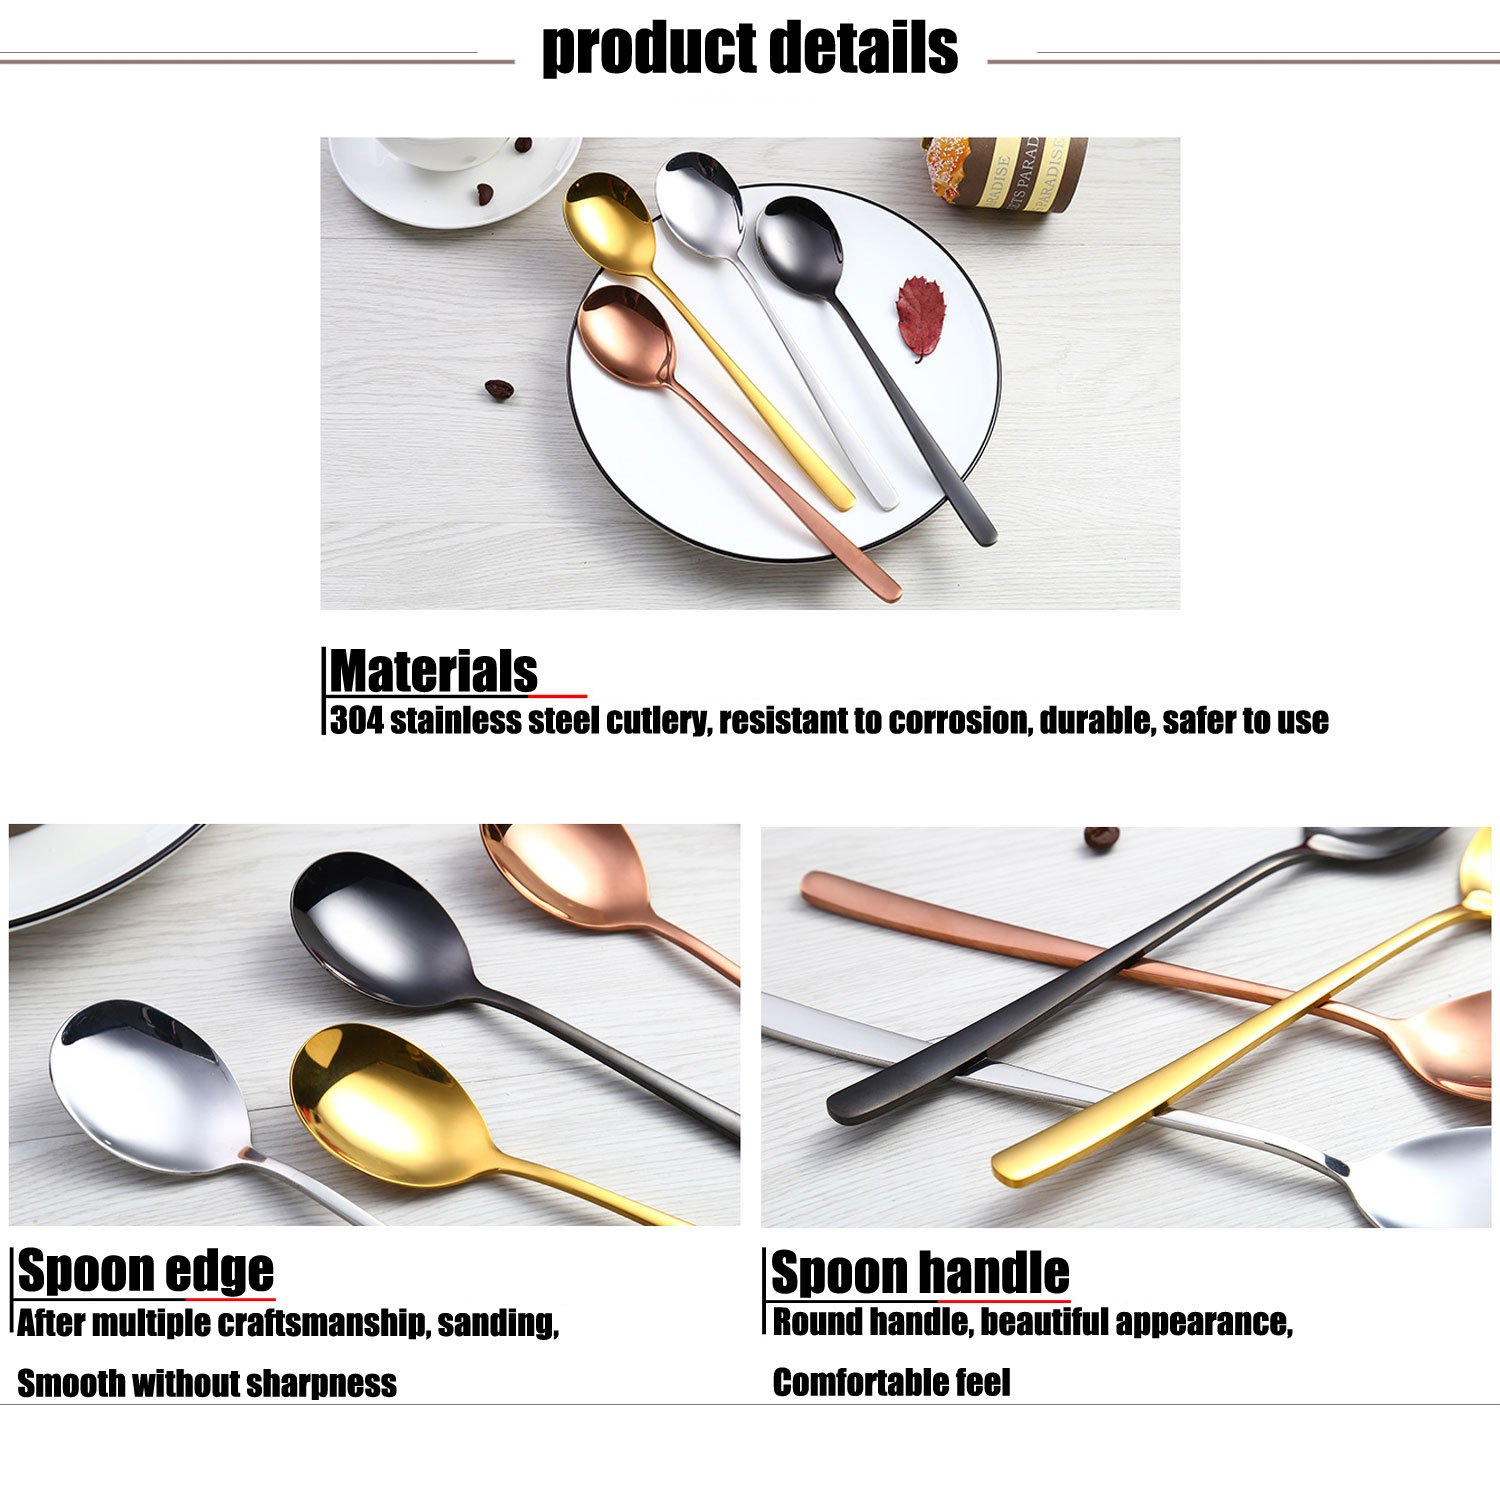 Spoons,QMFIVE,SET OF 4 Piece,Rice spoon,Soup spoon,8.3inch Color stainless steel spoon,Chic and elegant by QMFIVE (Image #3)